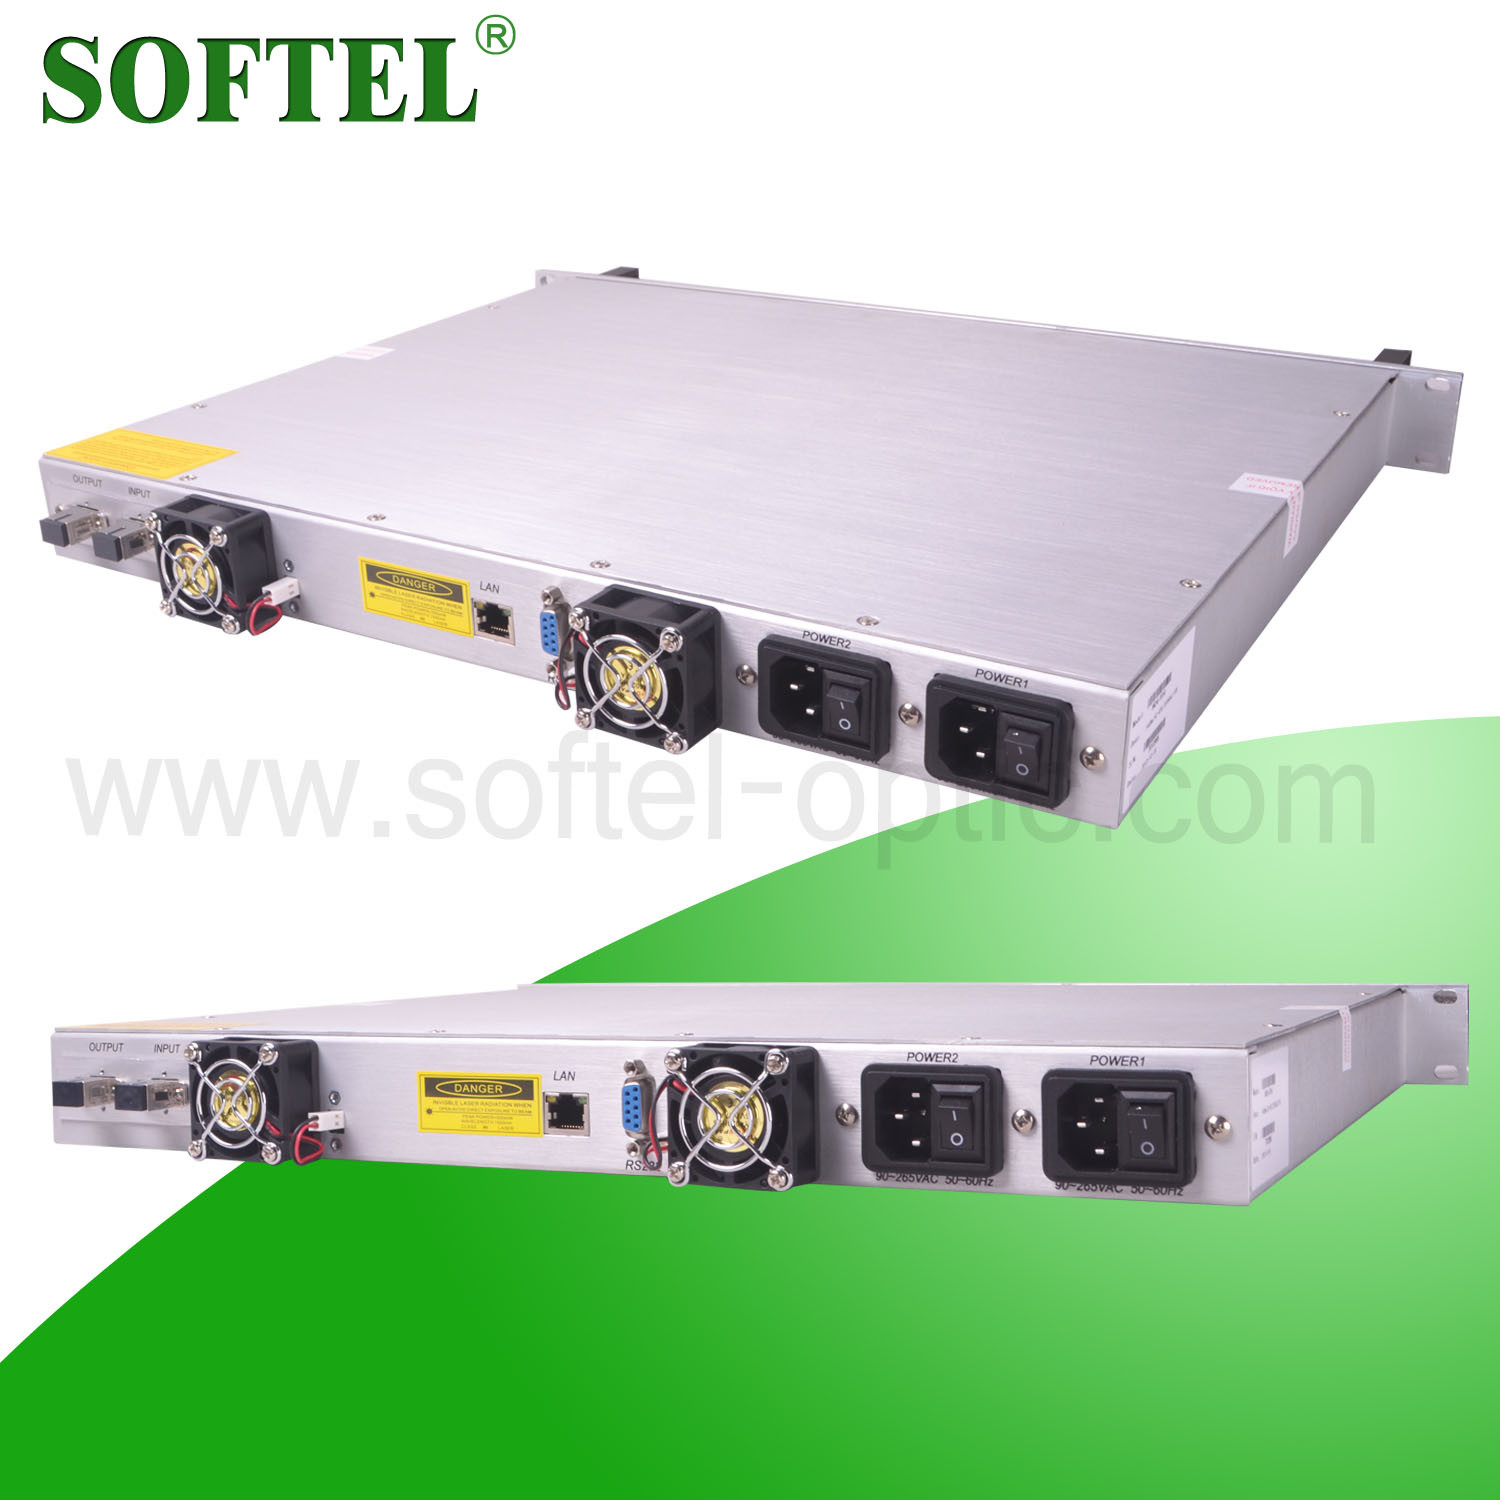 2014 1550nm 24dB EDFA Fiber Optical Signal Amplifier with Dfb Laser, RJ45 and RS232 Port